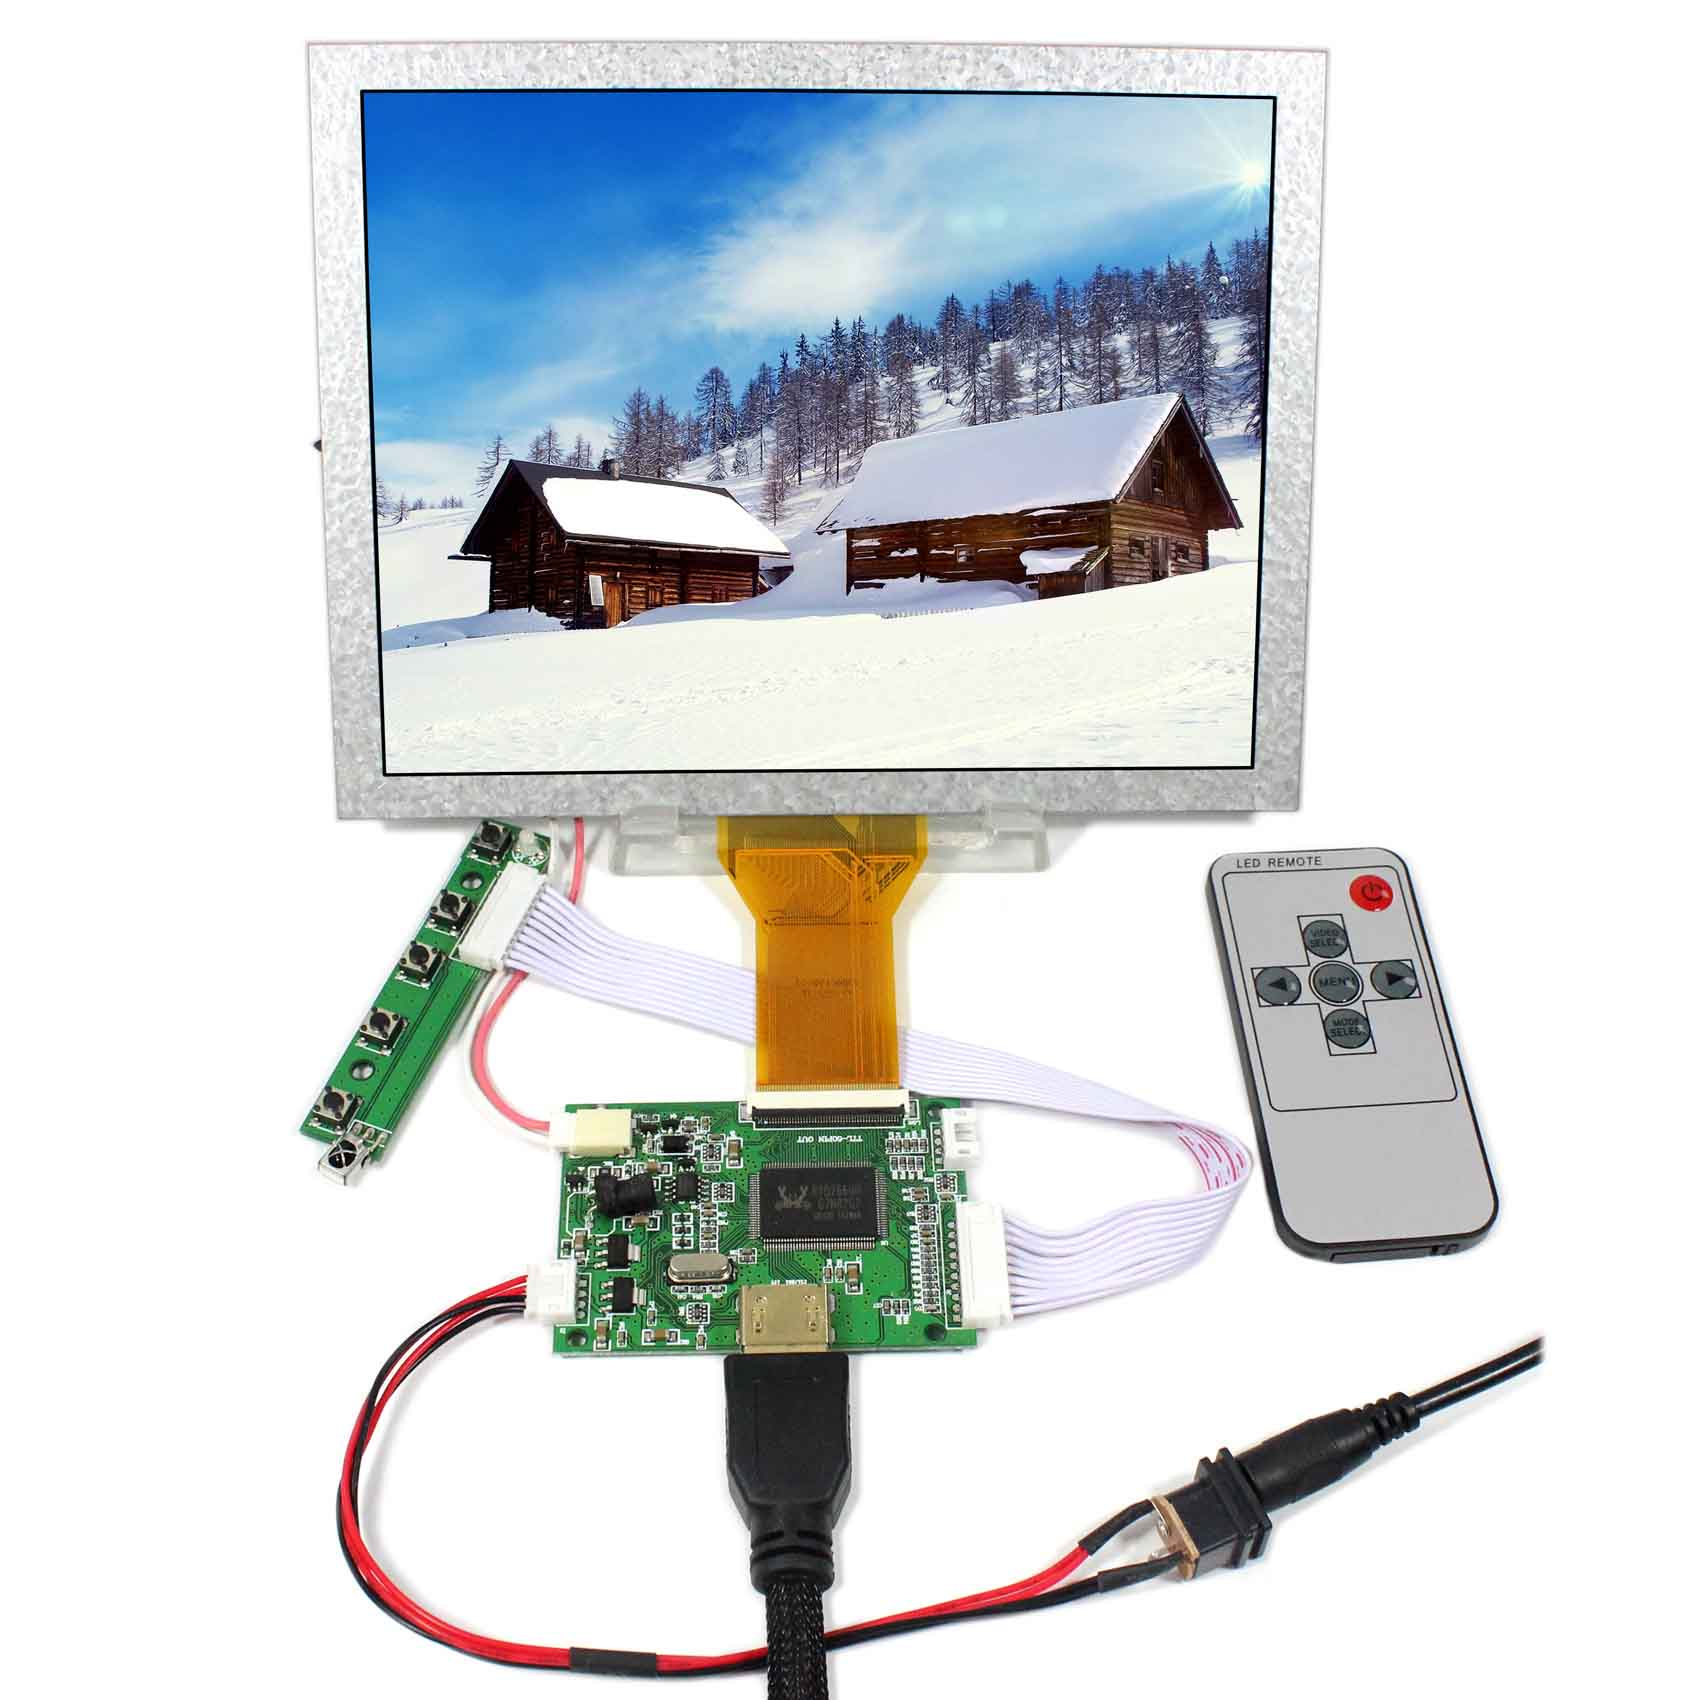 HDMI Input LCD Controller Board 8inch 800x600 EJ080NA-05A AT080TN52 LCD Screen hdmi vga av audio usb fpv controller board 8inch 800x600 ej080na 05a lcd panel screen model lcd for raspberry pi